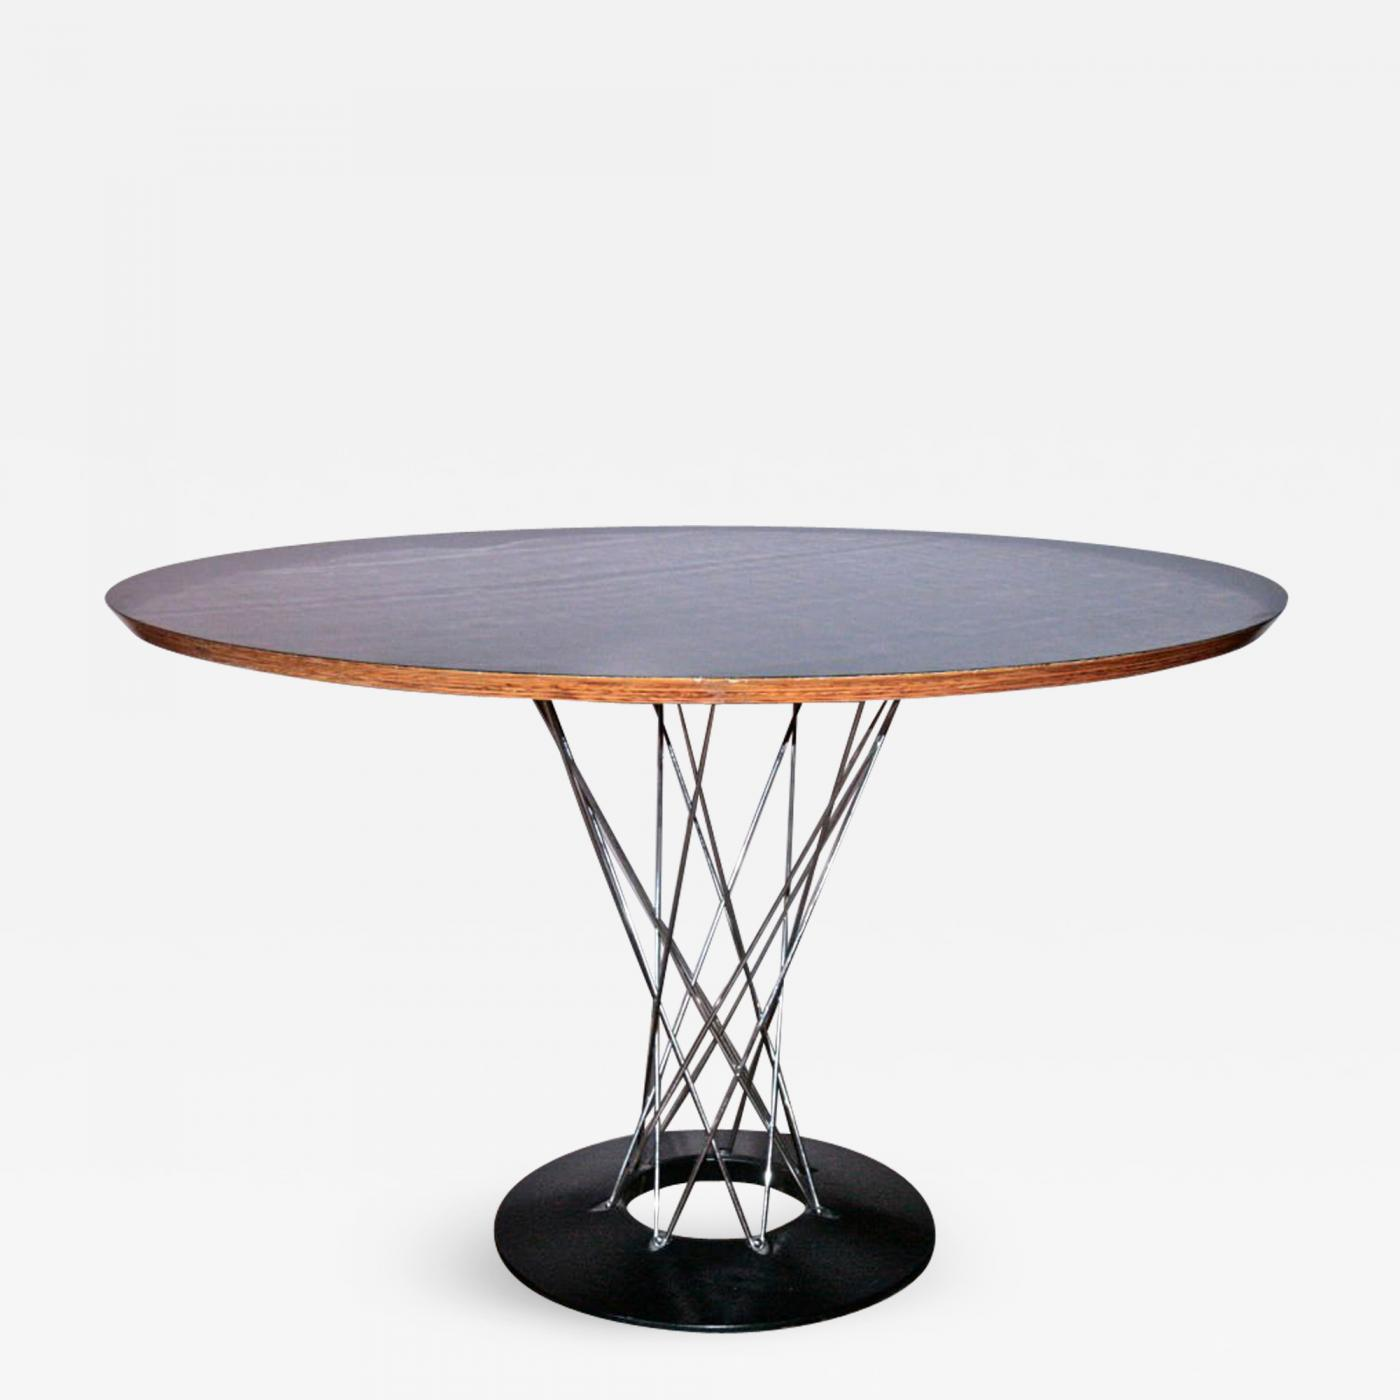 Merveilleux Listings / Furniture / Tables / Dining Tables